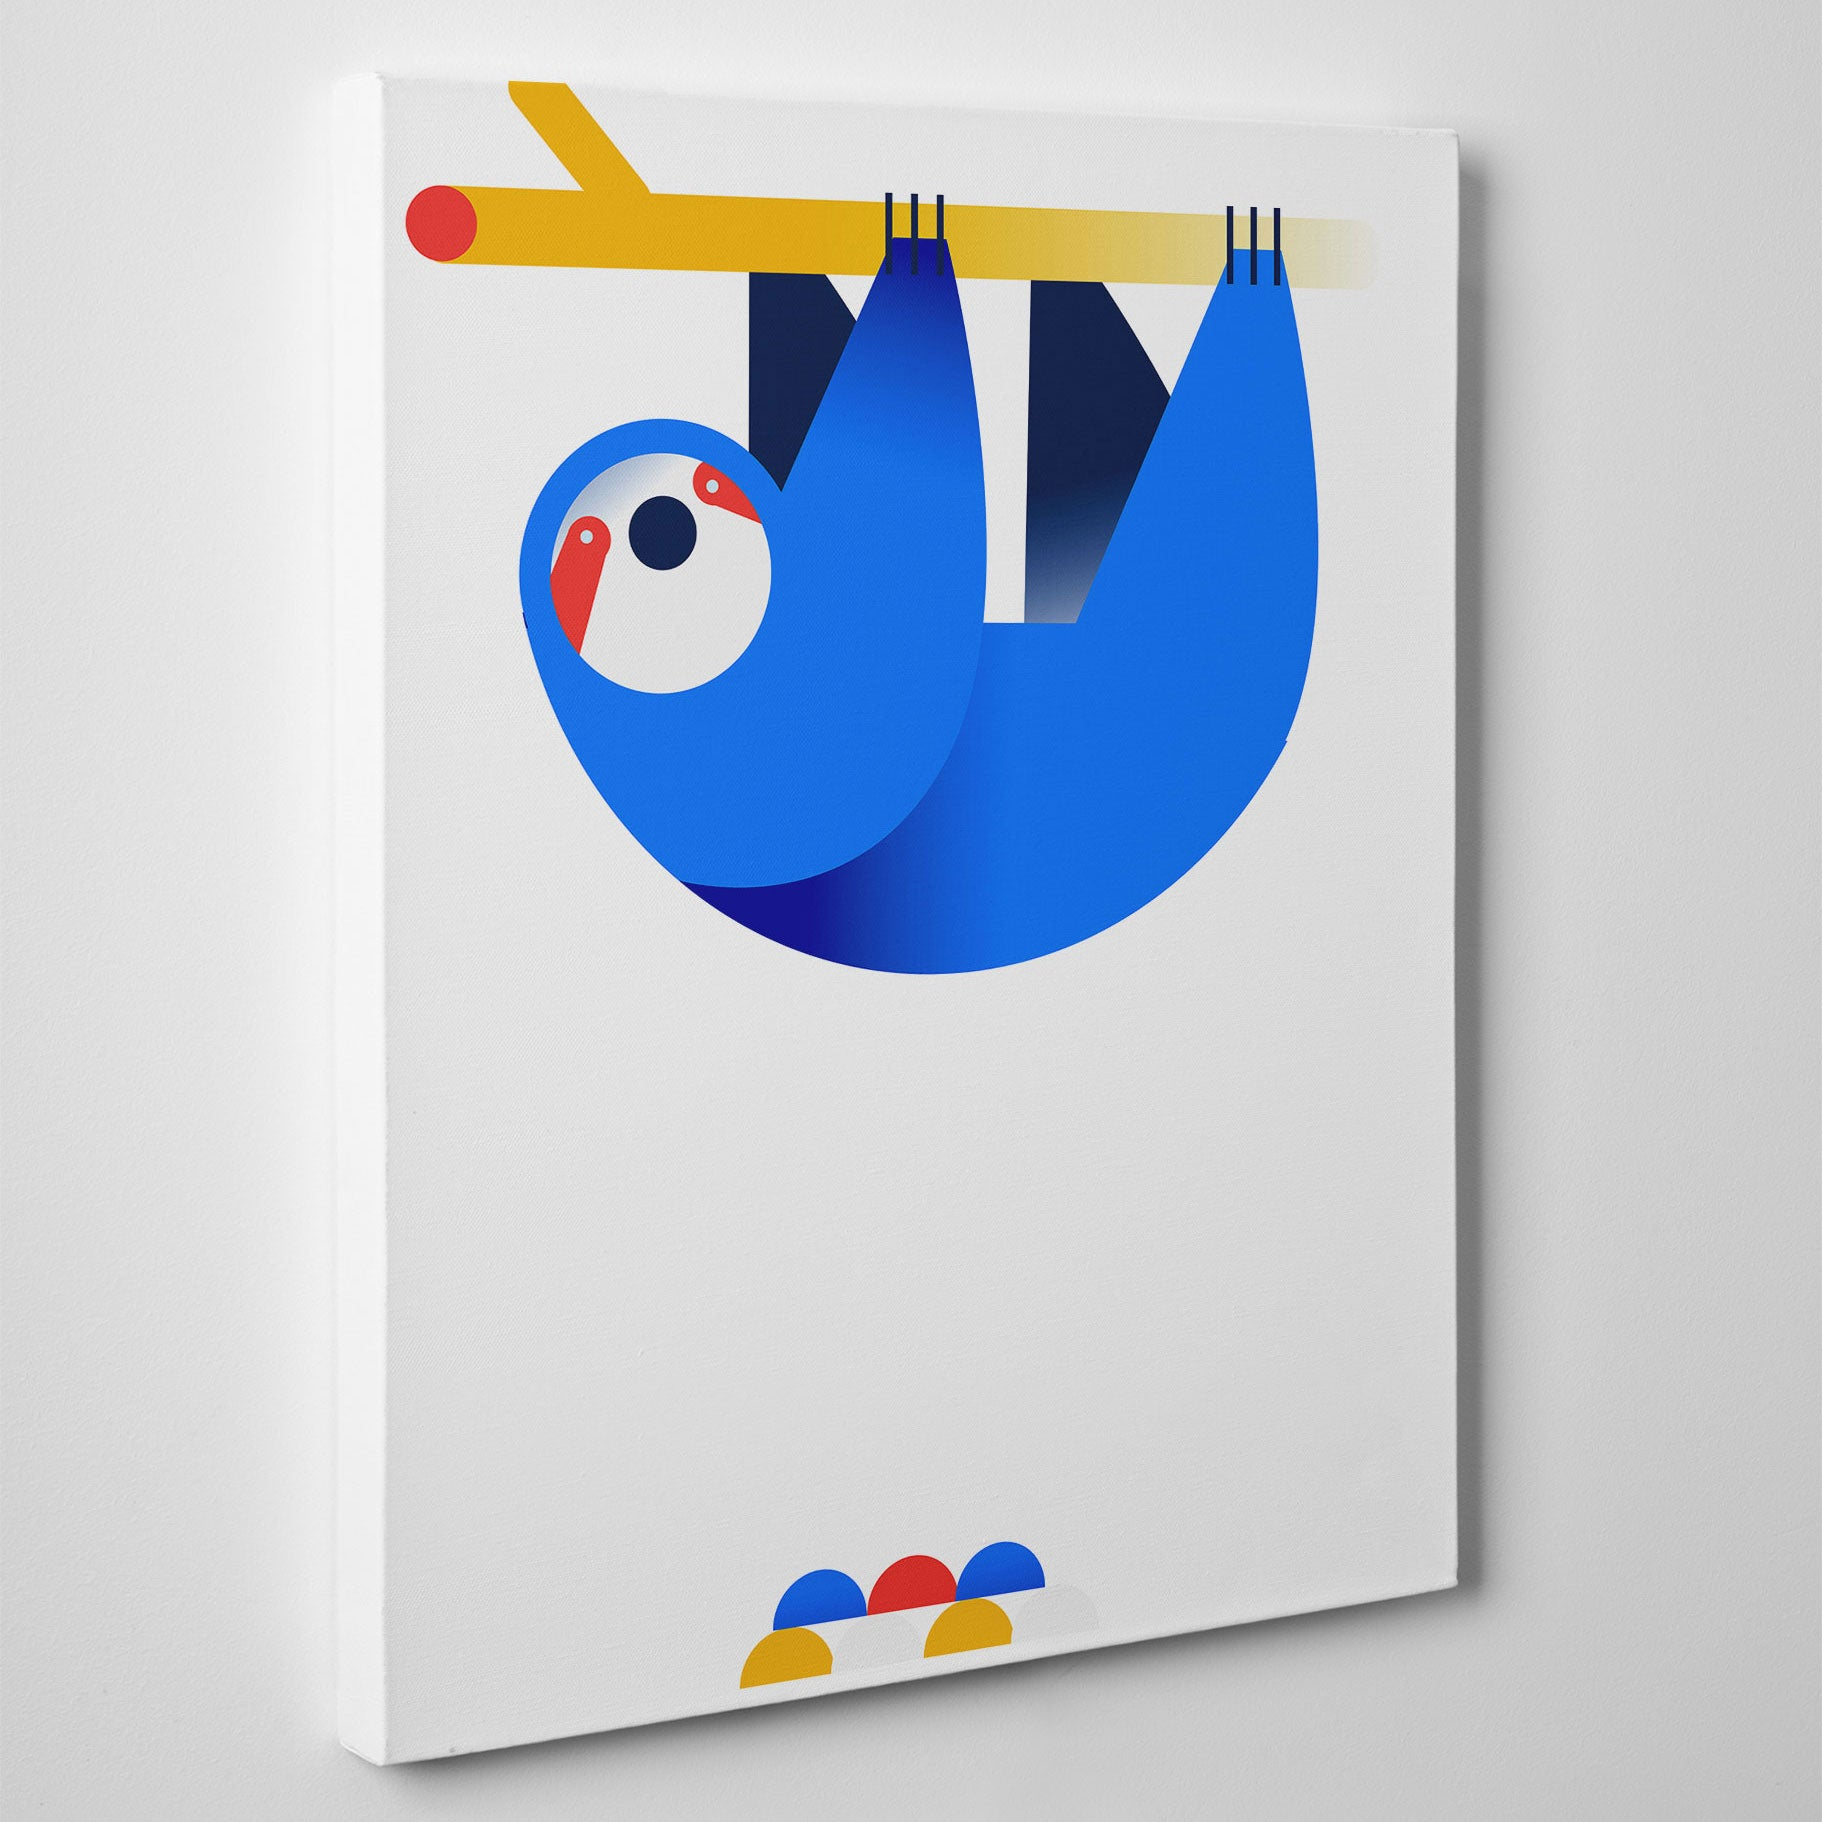 Nursery canvas print with a hanging blue sloth, on white background - side view